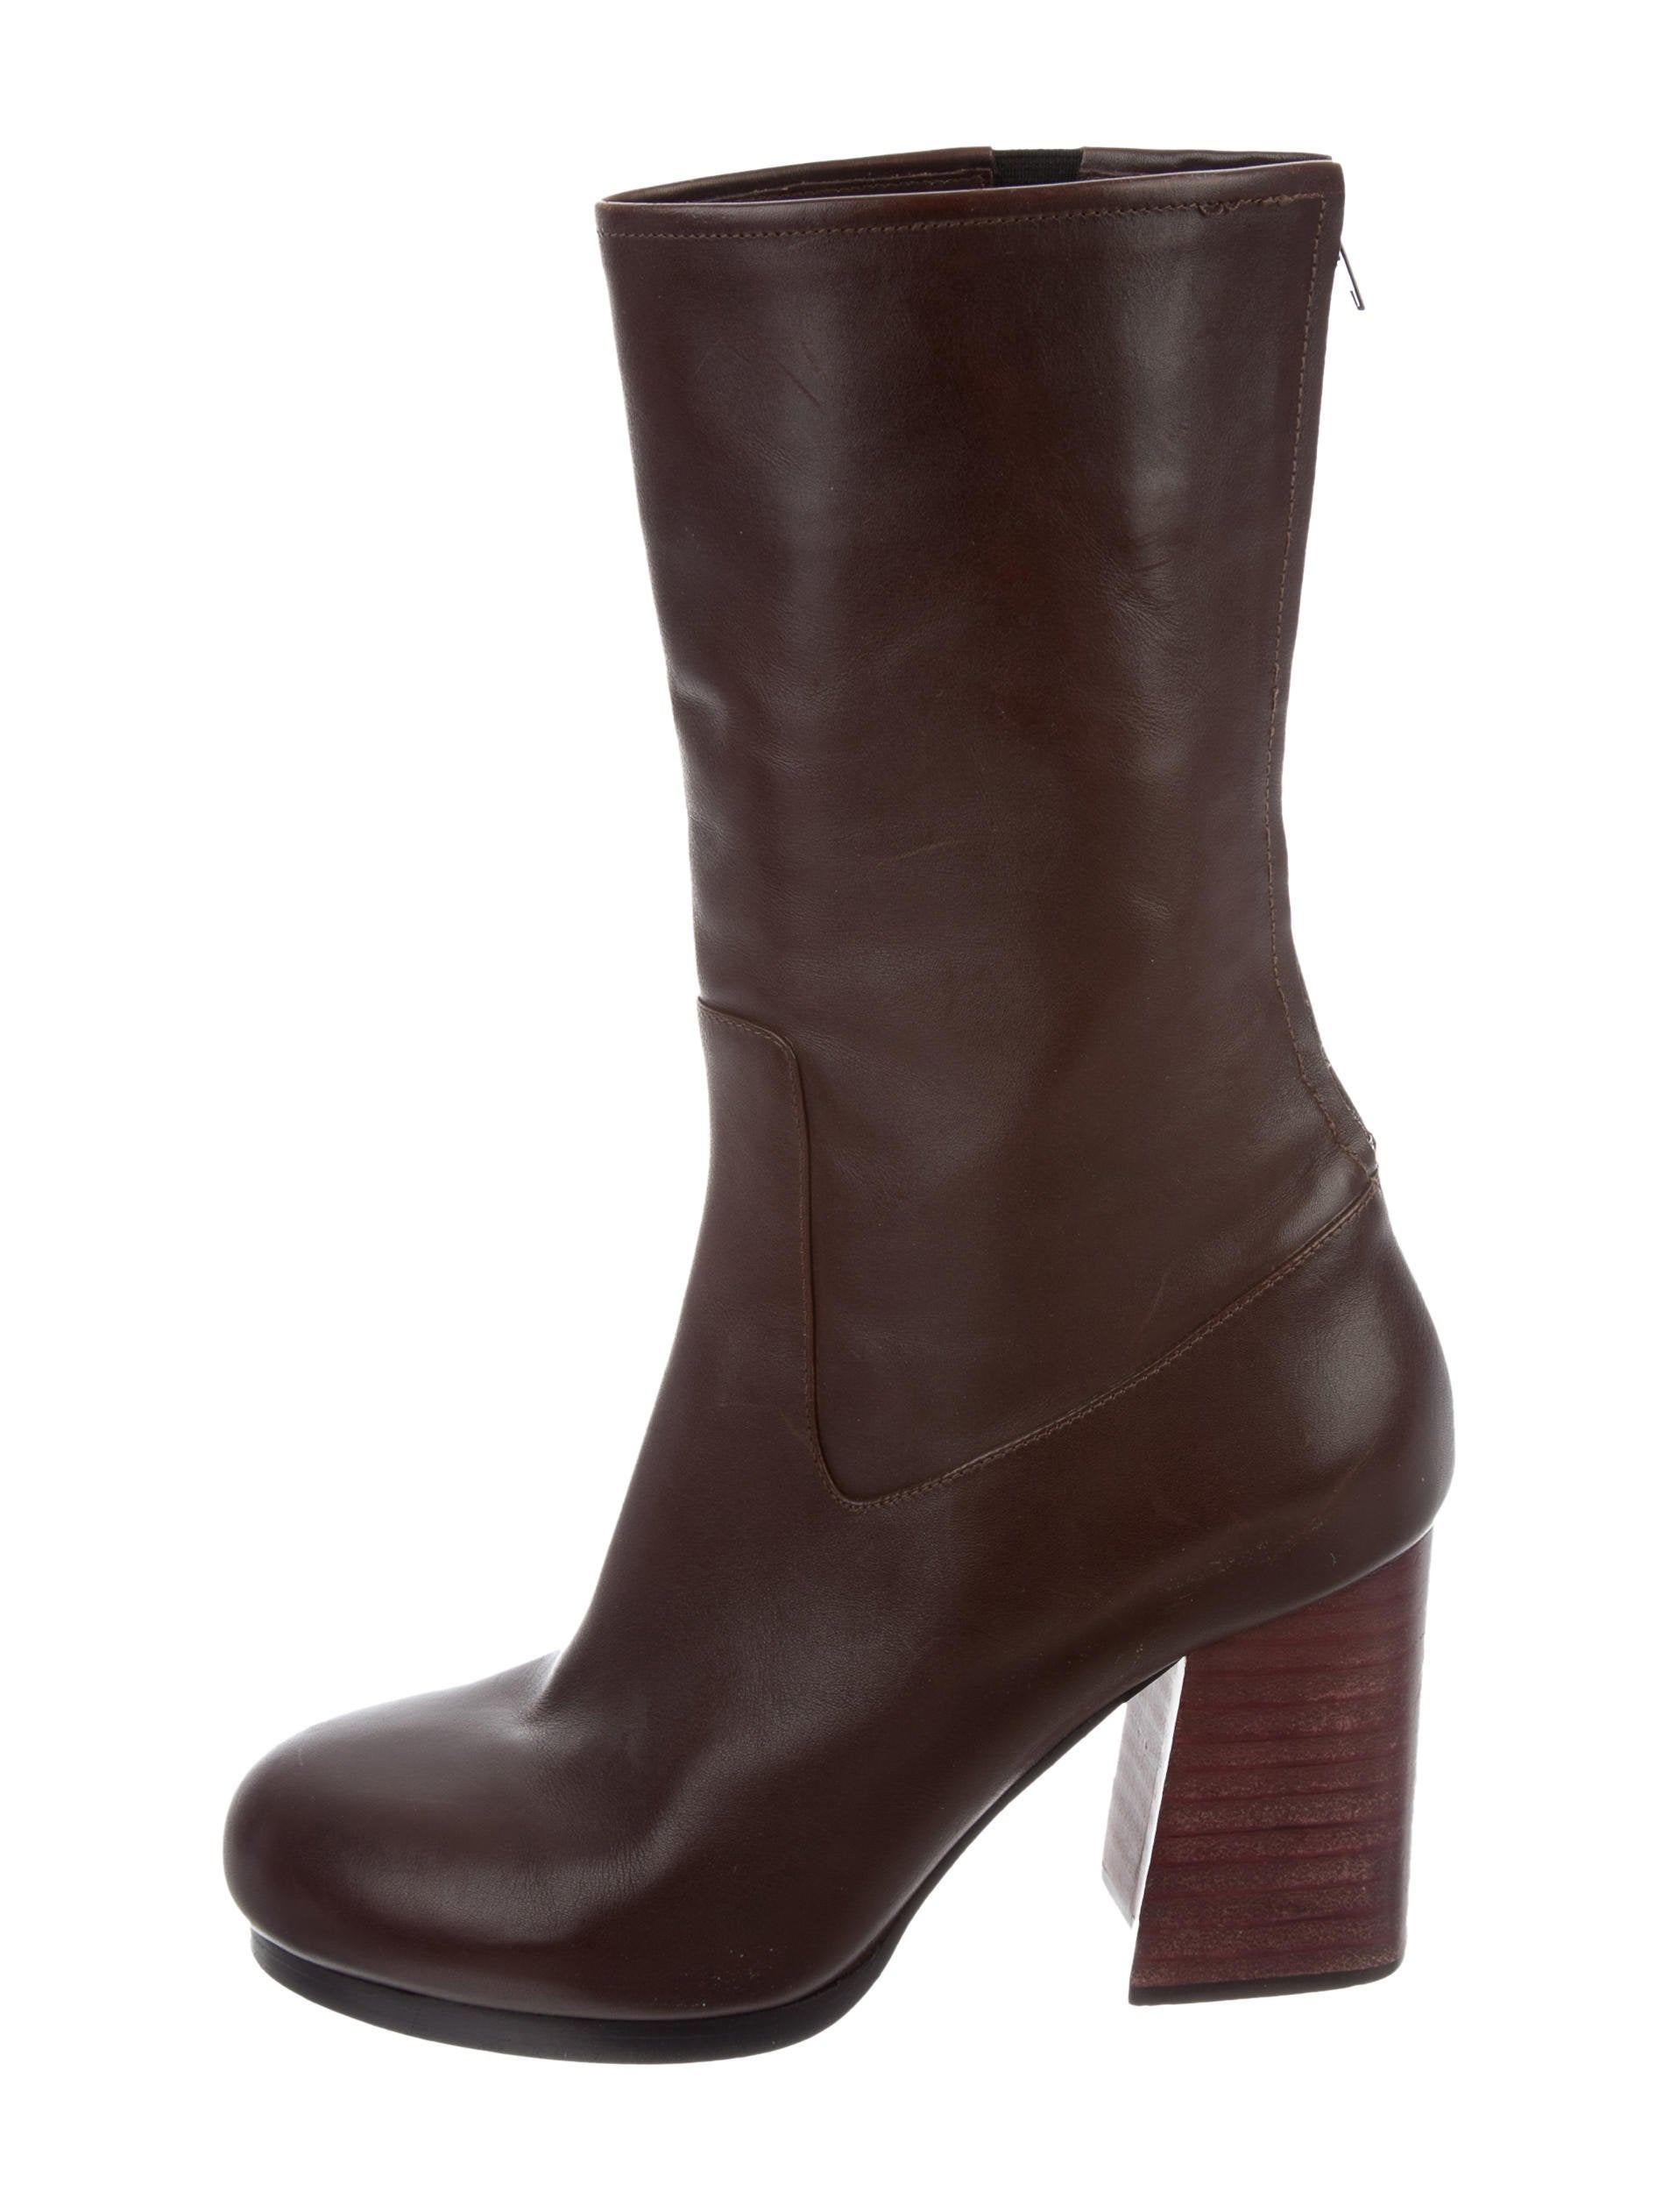 calvin klein collection leather mid calf boots shoes